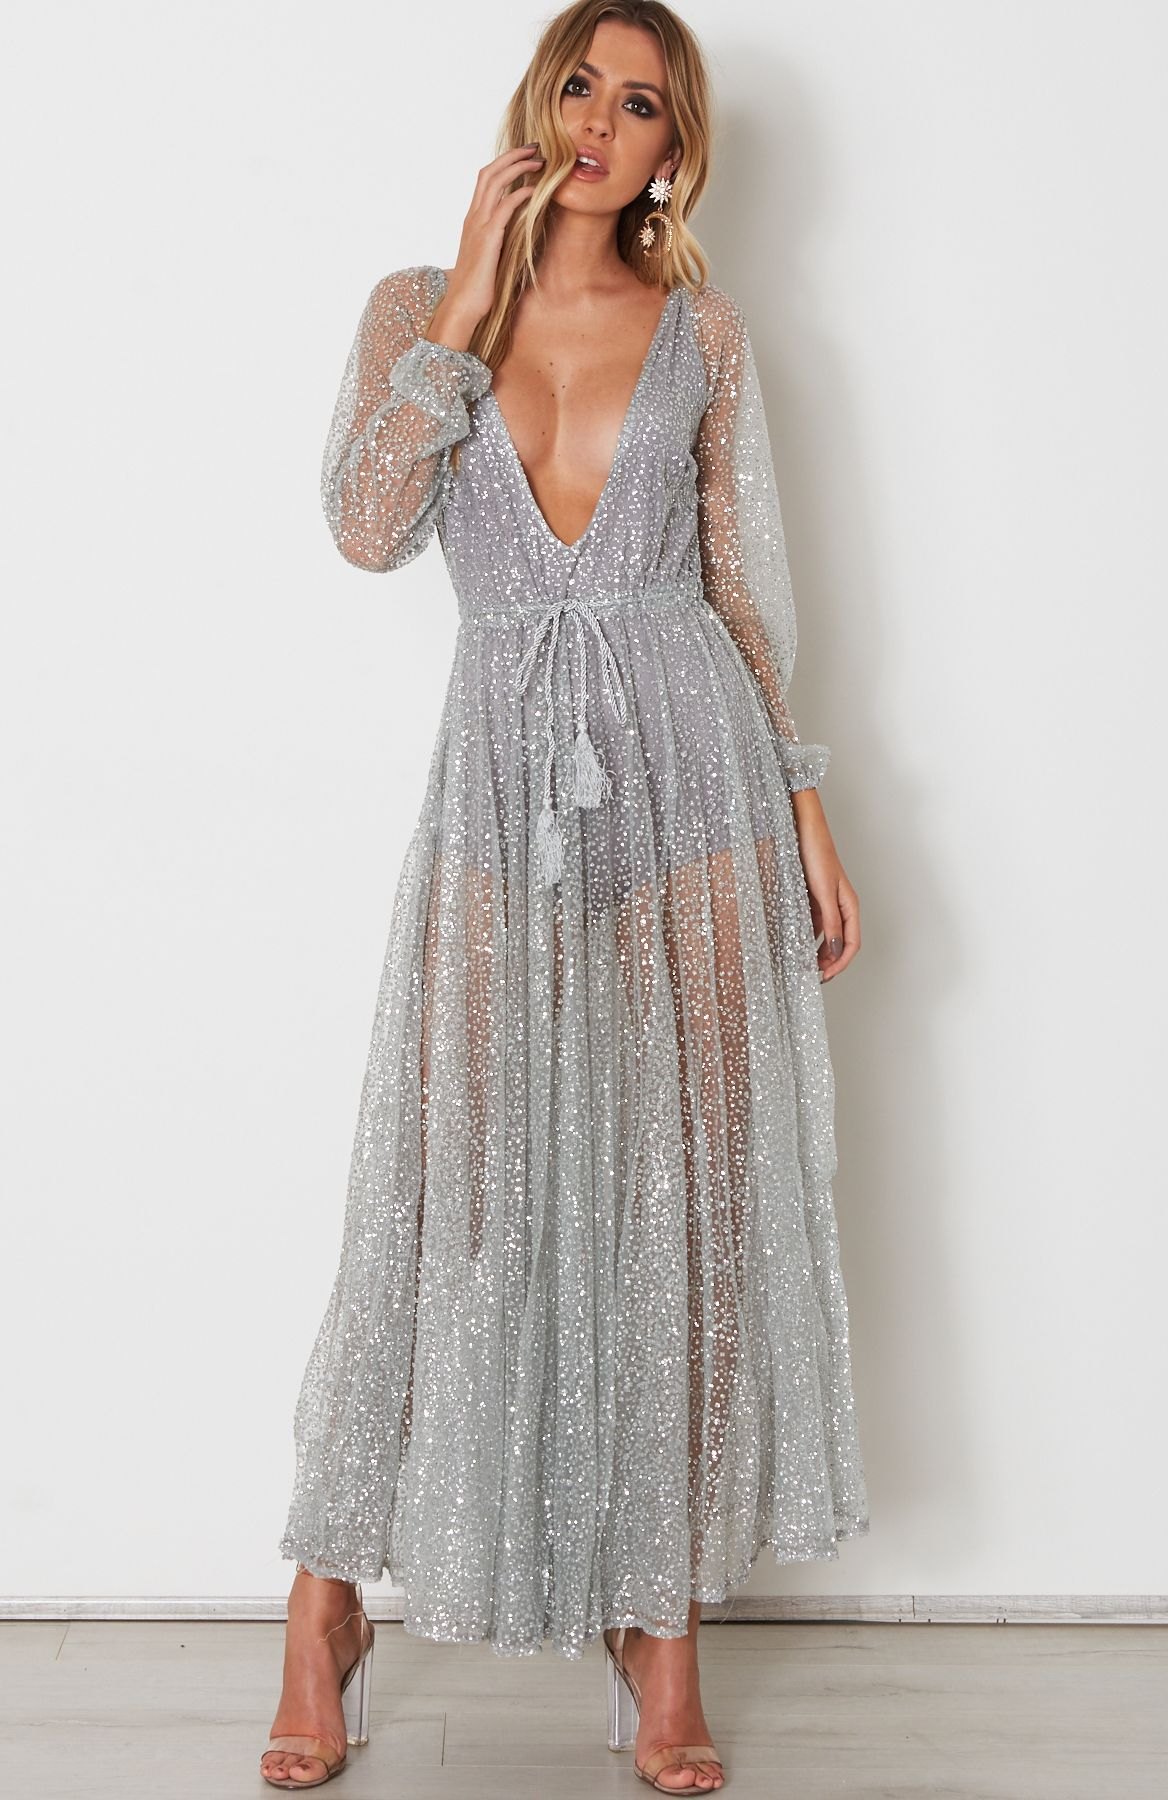 b4bfa579437f Chiffon dress in gold or silver - Ailani – Beachside Bunny